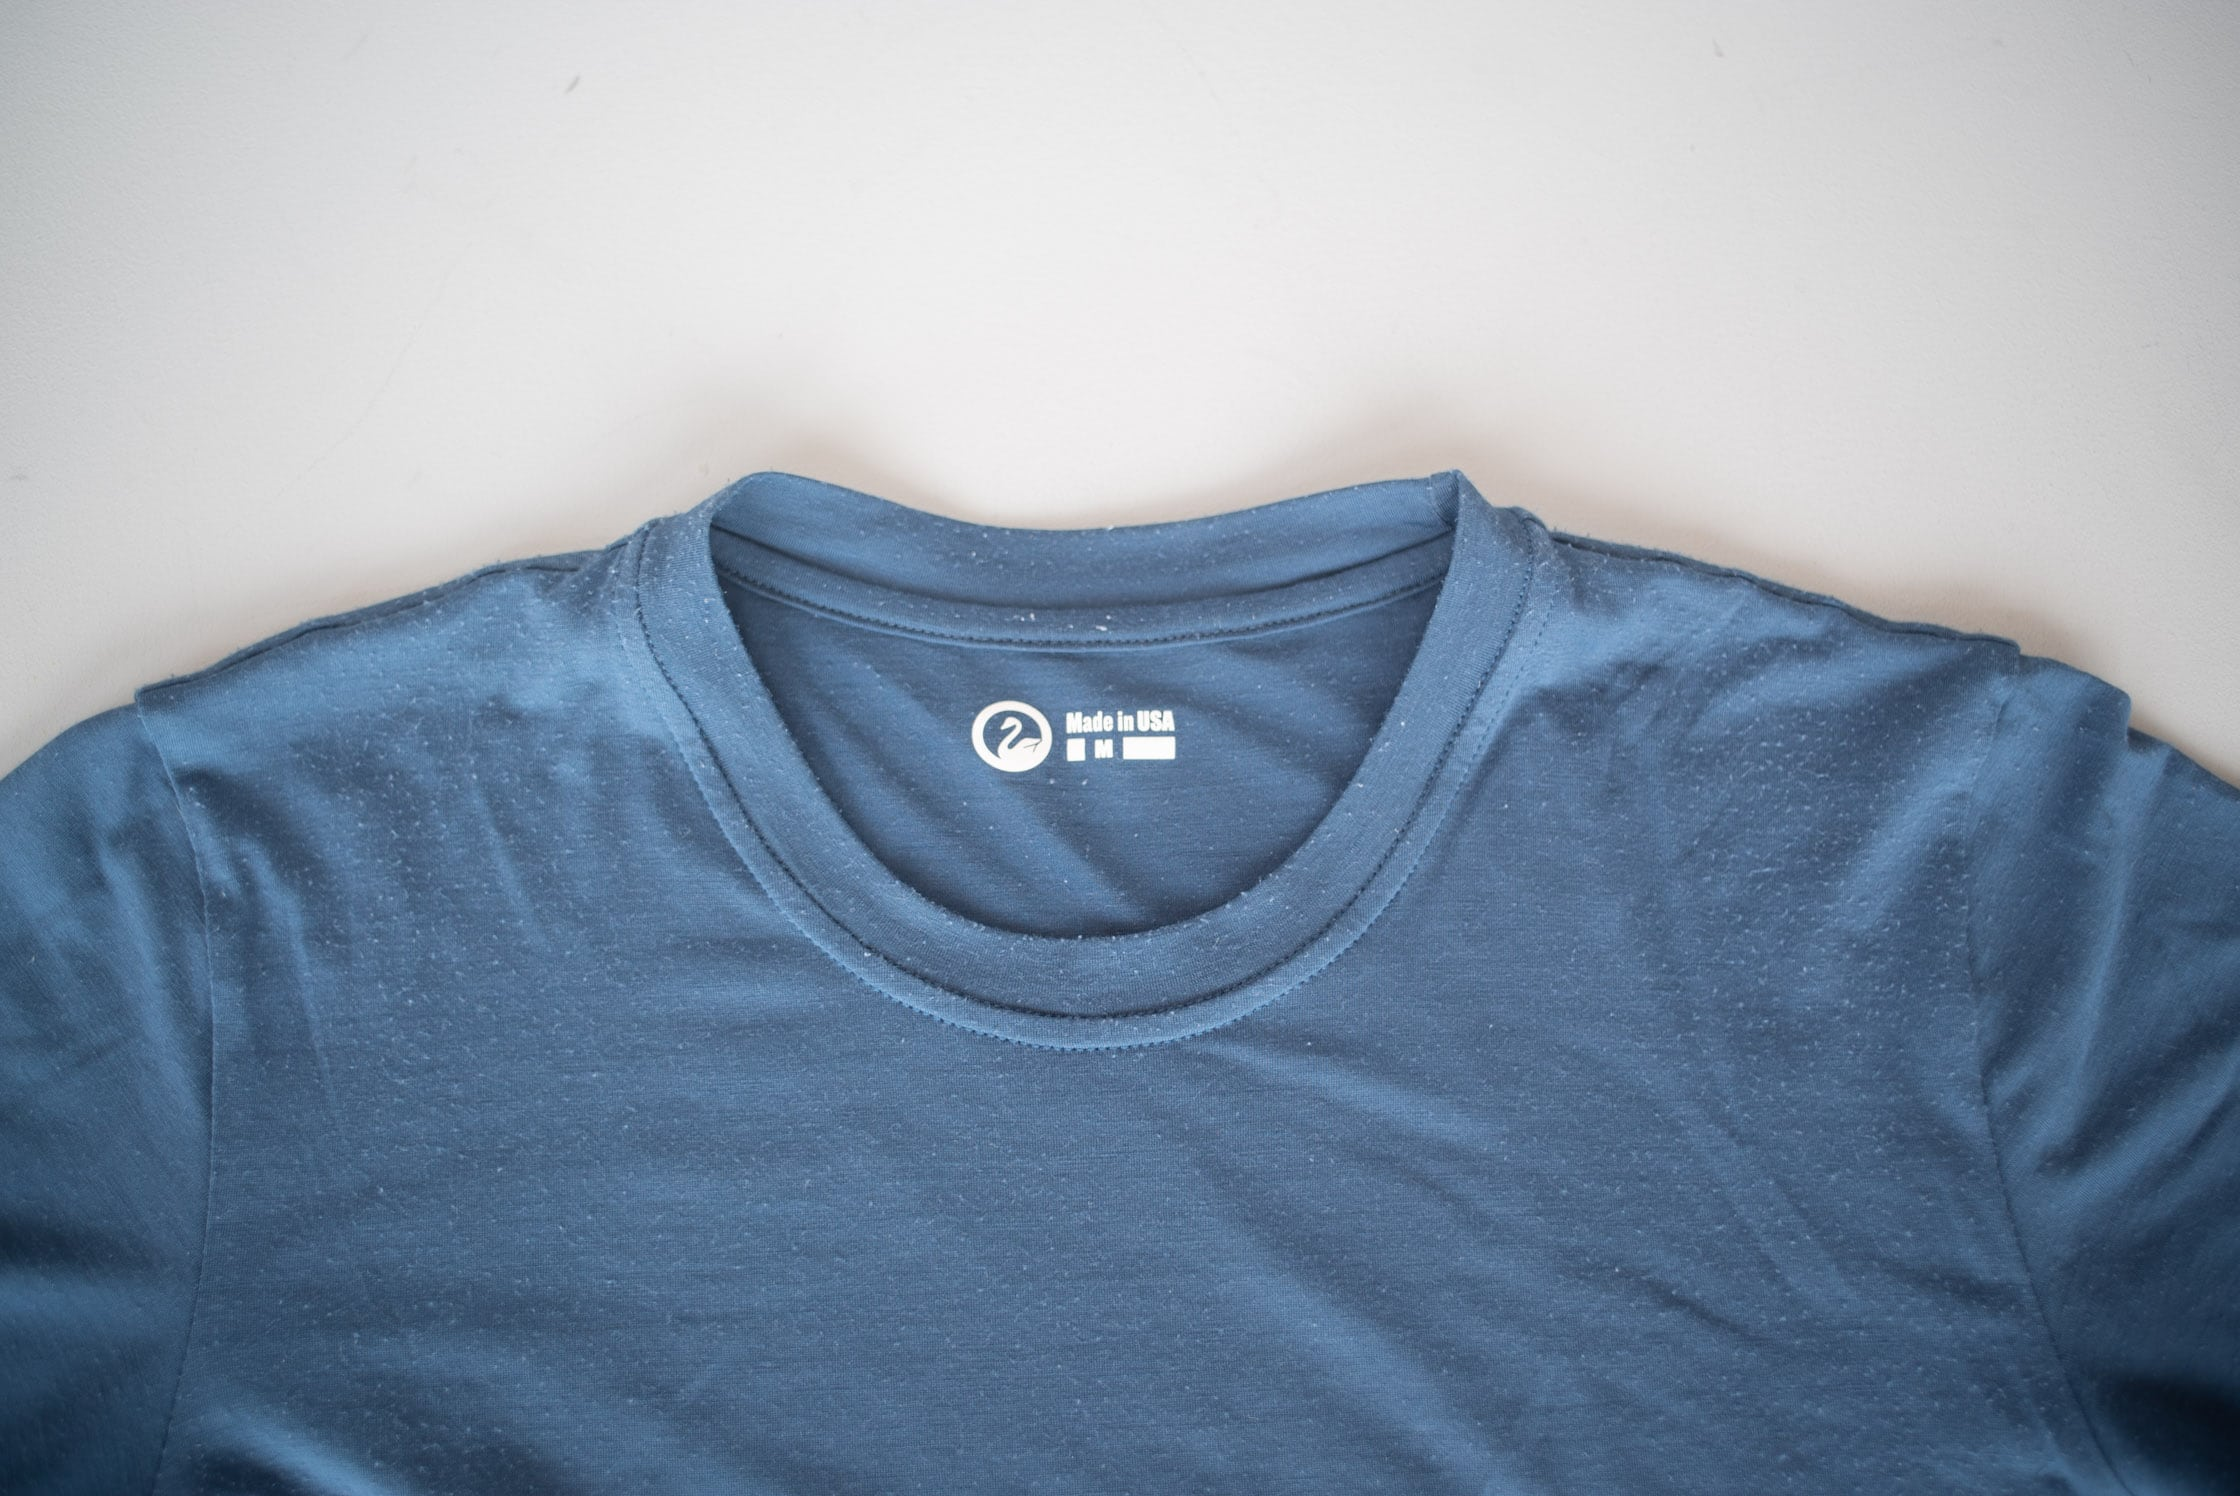 Outlier Runweight Merino Sea Blue T-shirt Neckline